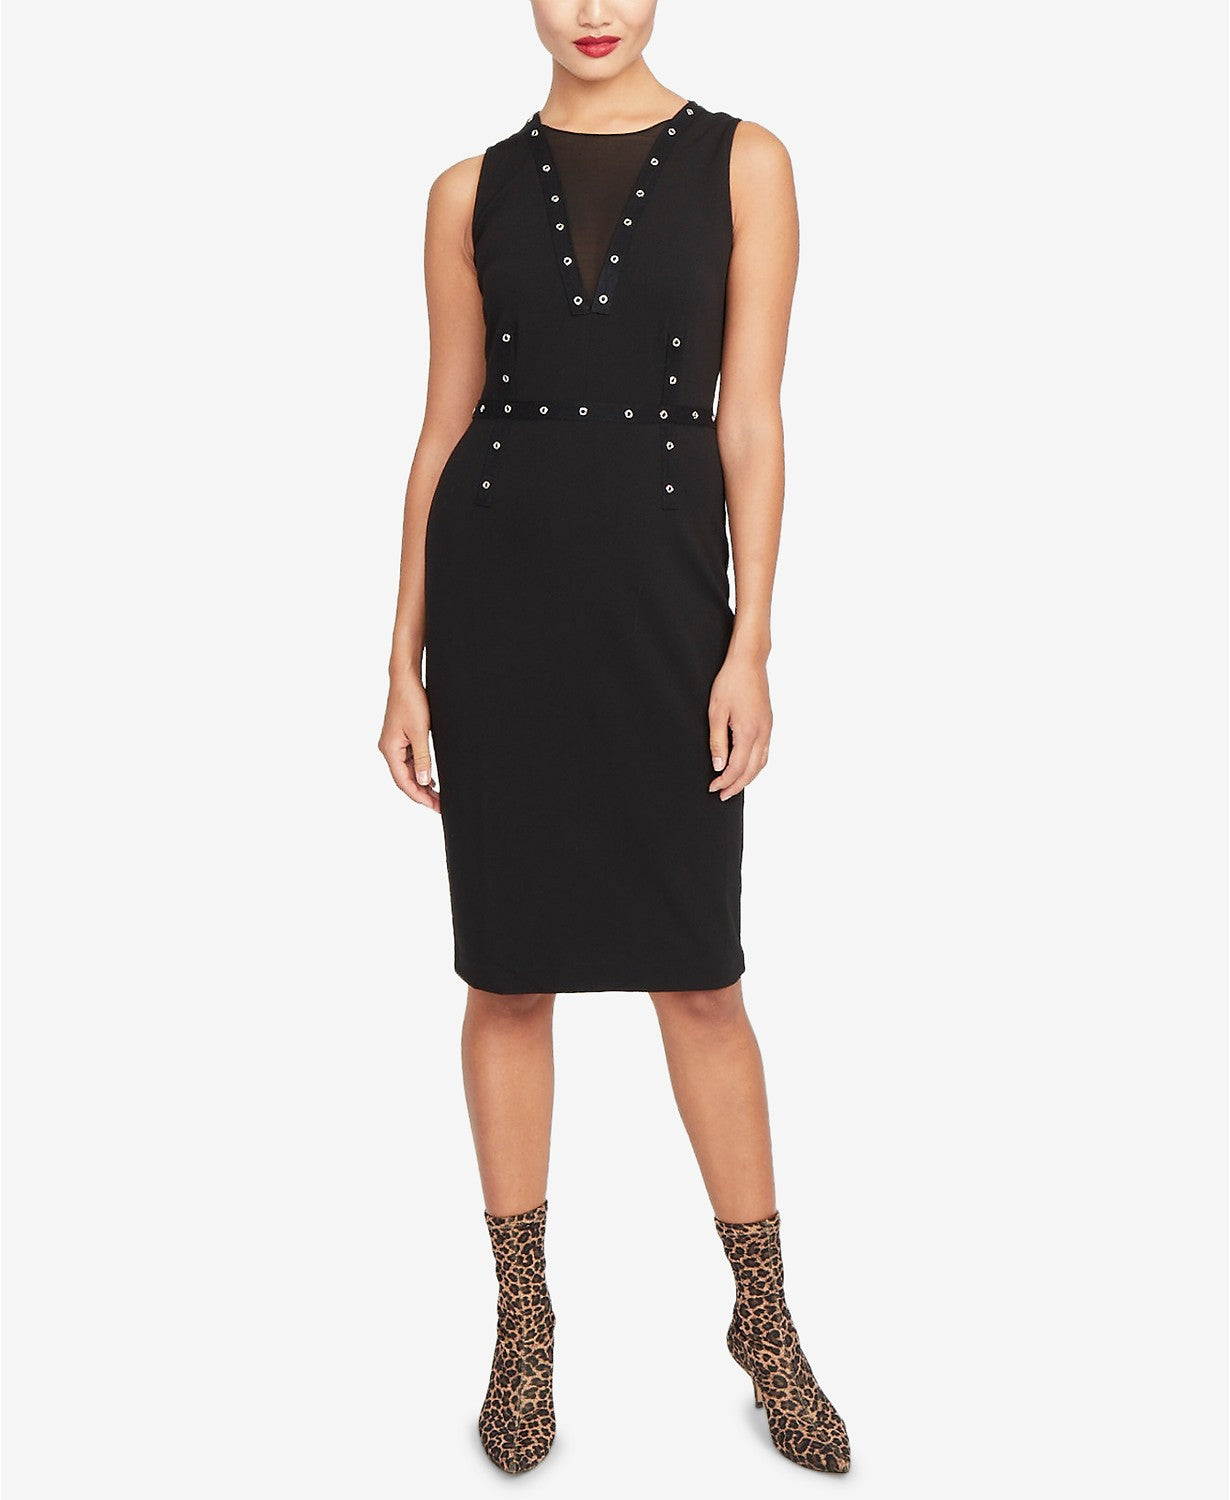 RACHEL Rachel Roy Women's Zane Mesh Grommet Dress Black S